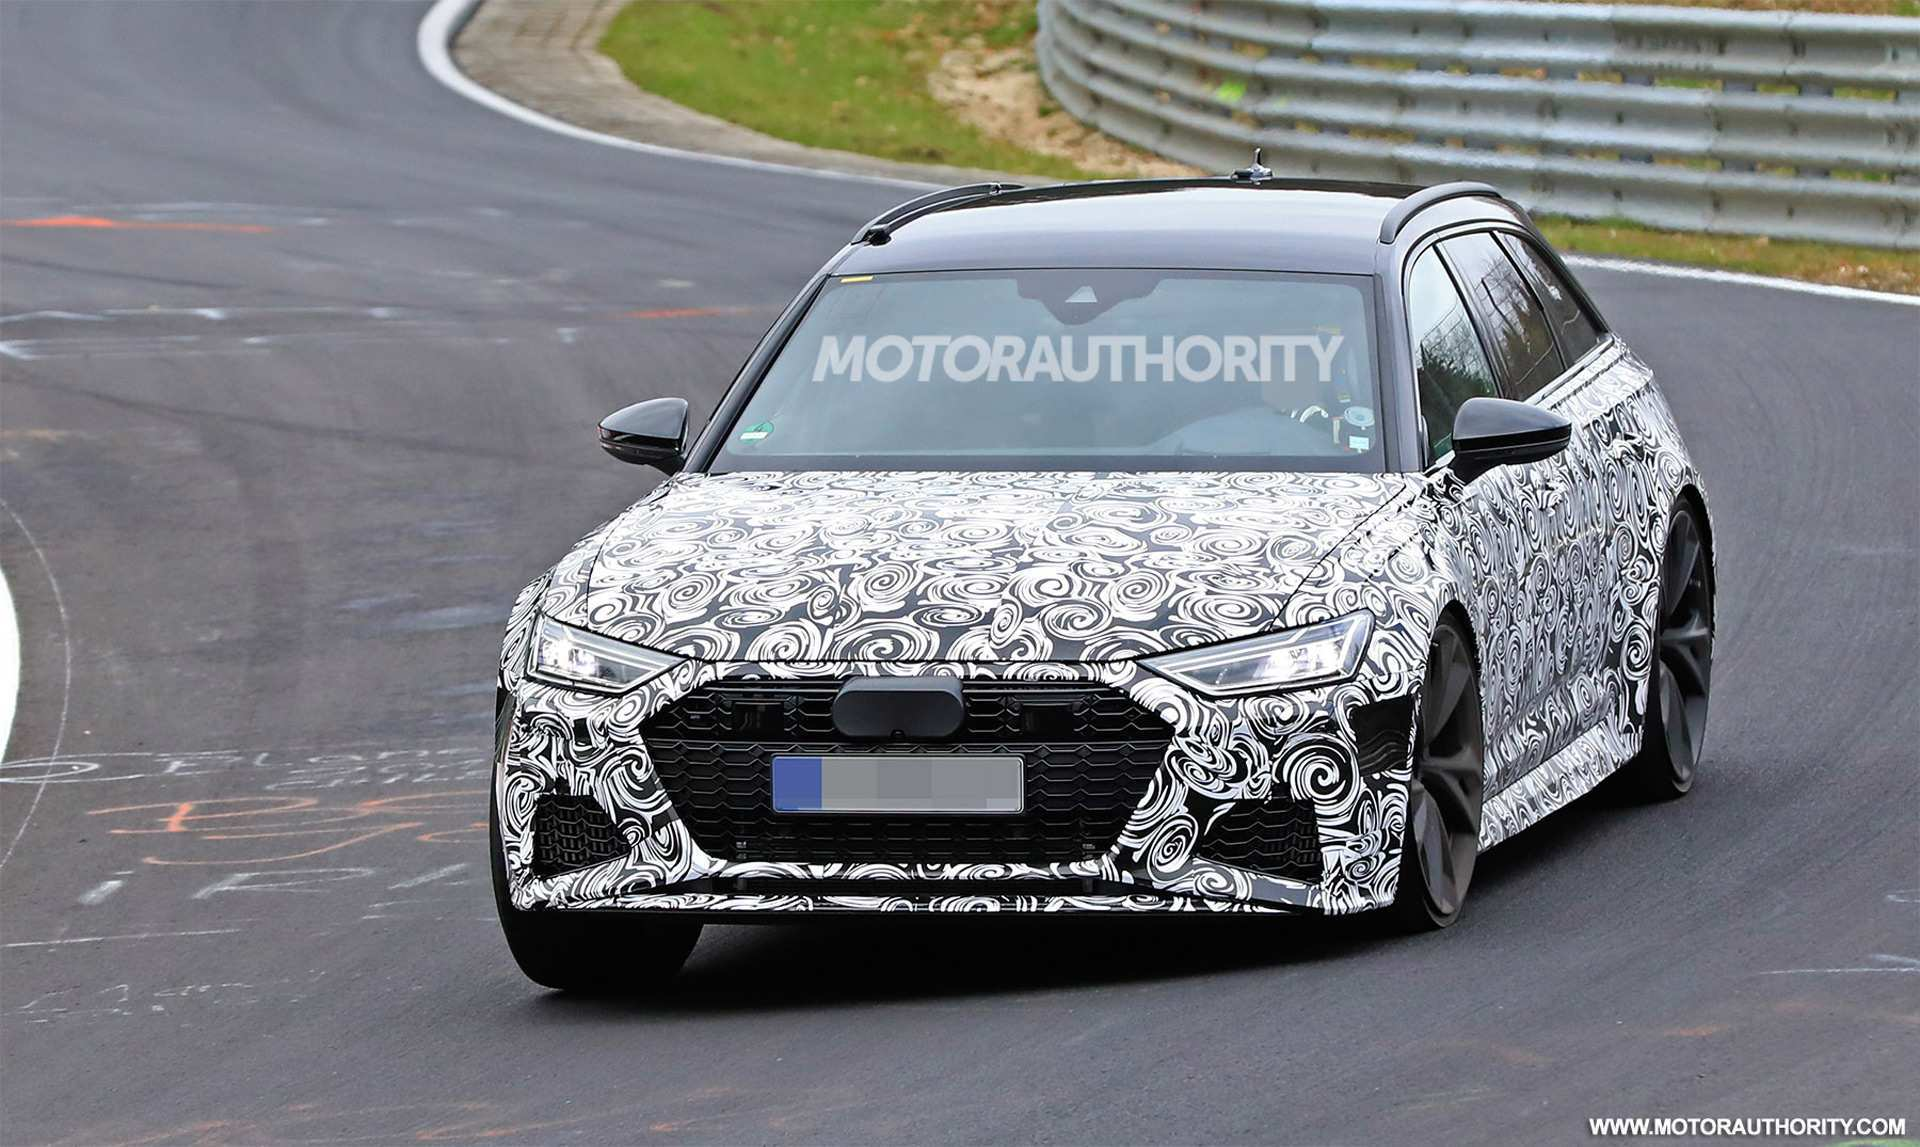 78 All New 2020 Audi Rs6 Wagon Price And Review